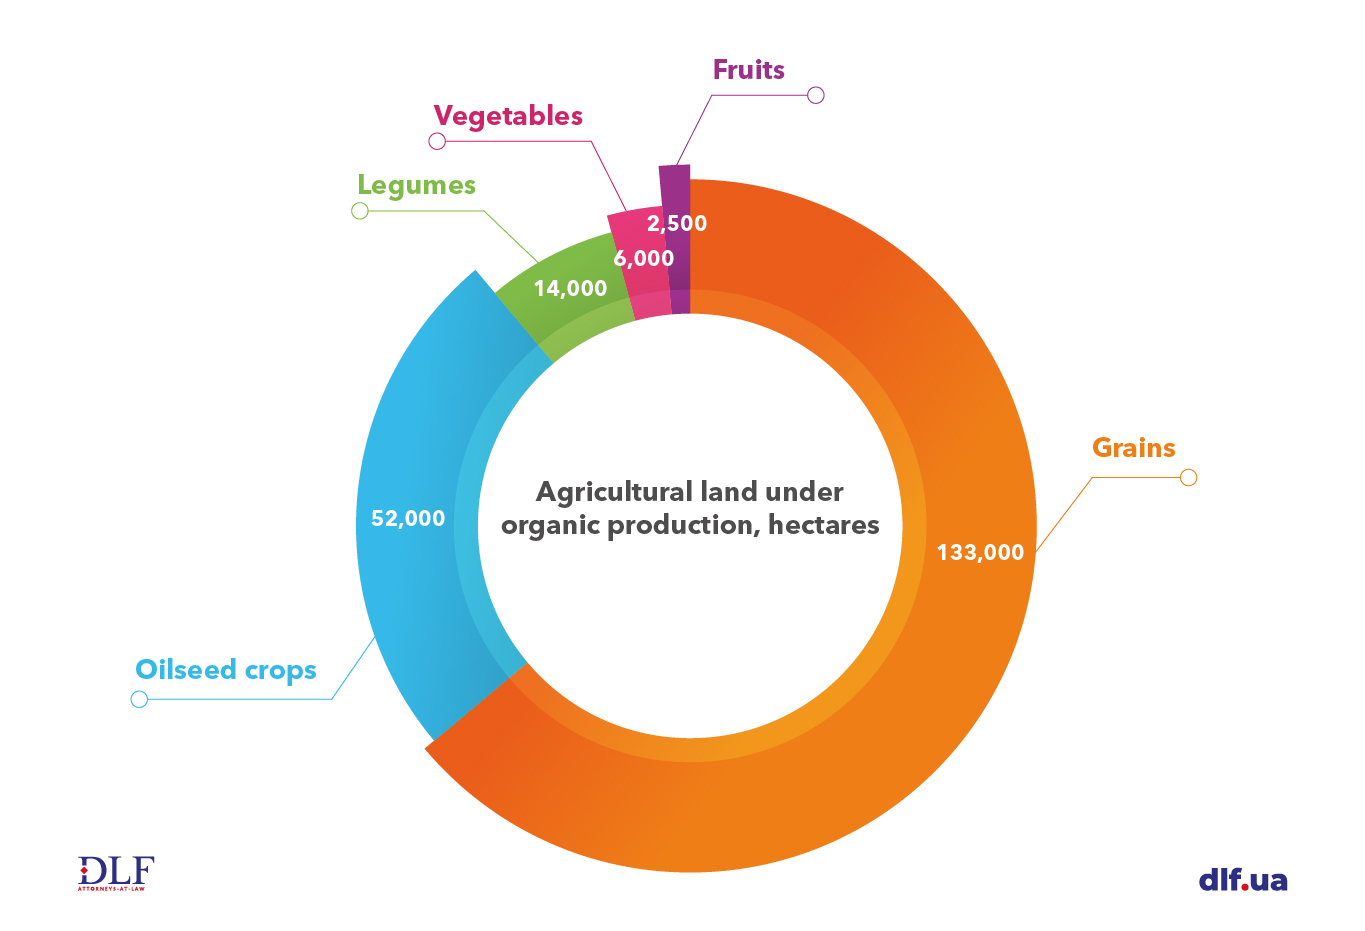 Ukraine agriculture - DLF attorneys-at-law - Agricultural land under organic production Chart